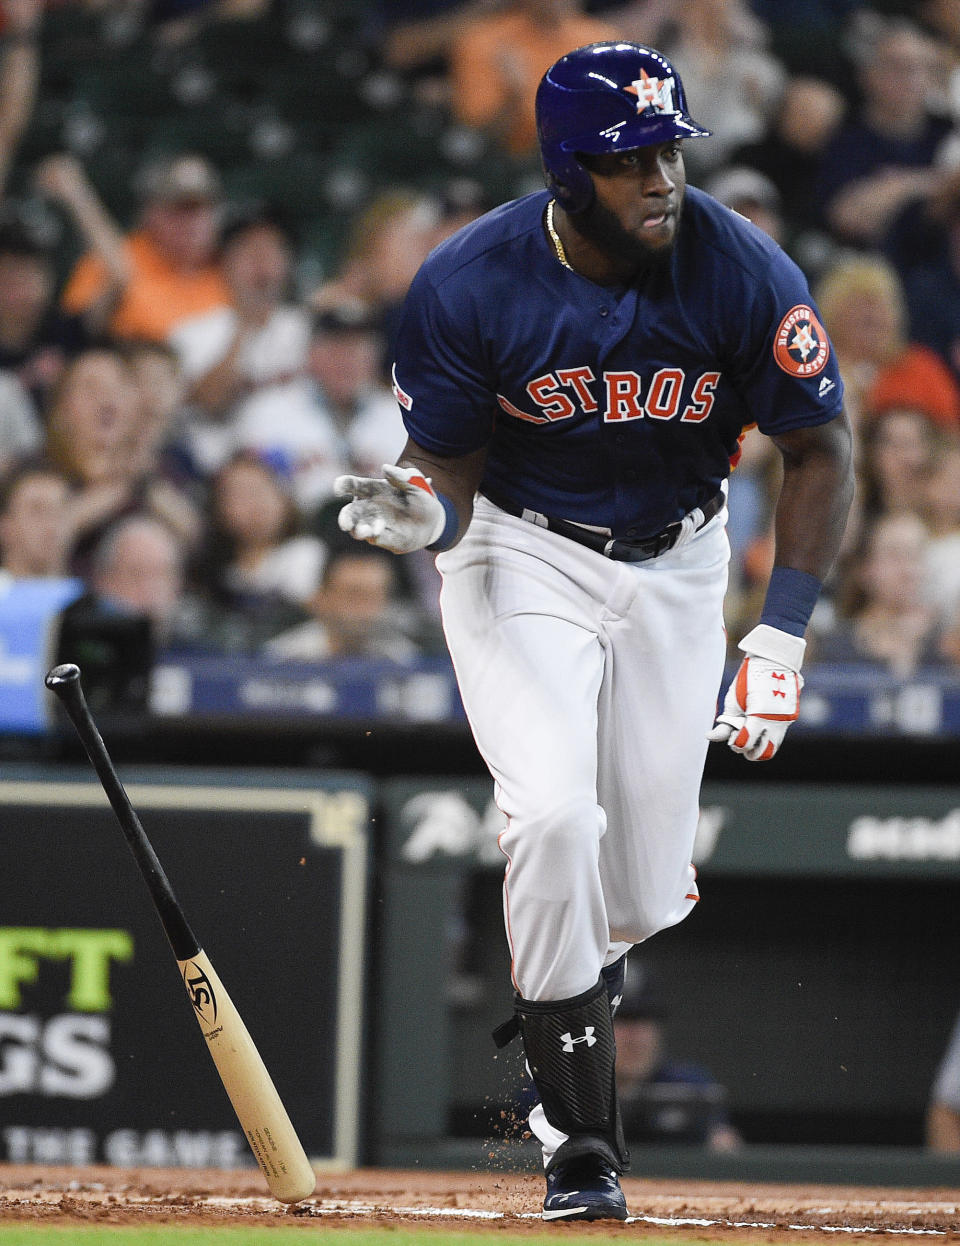 Houston Astros designated hitter Yordan Alvarez watches his two-run double during the first inning of a baseball game against the Seattle Mariners, Sunday, June 30, 2019, in Houston. (AP Photo/Eric Christian Smith)